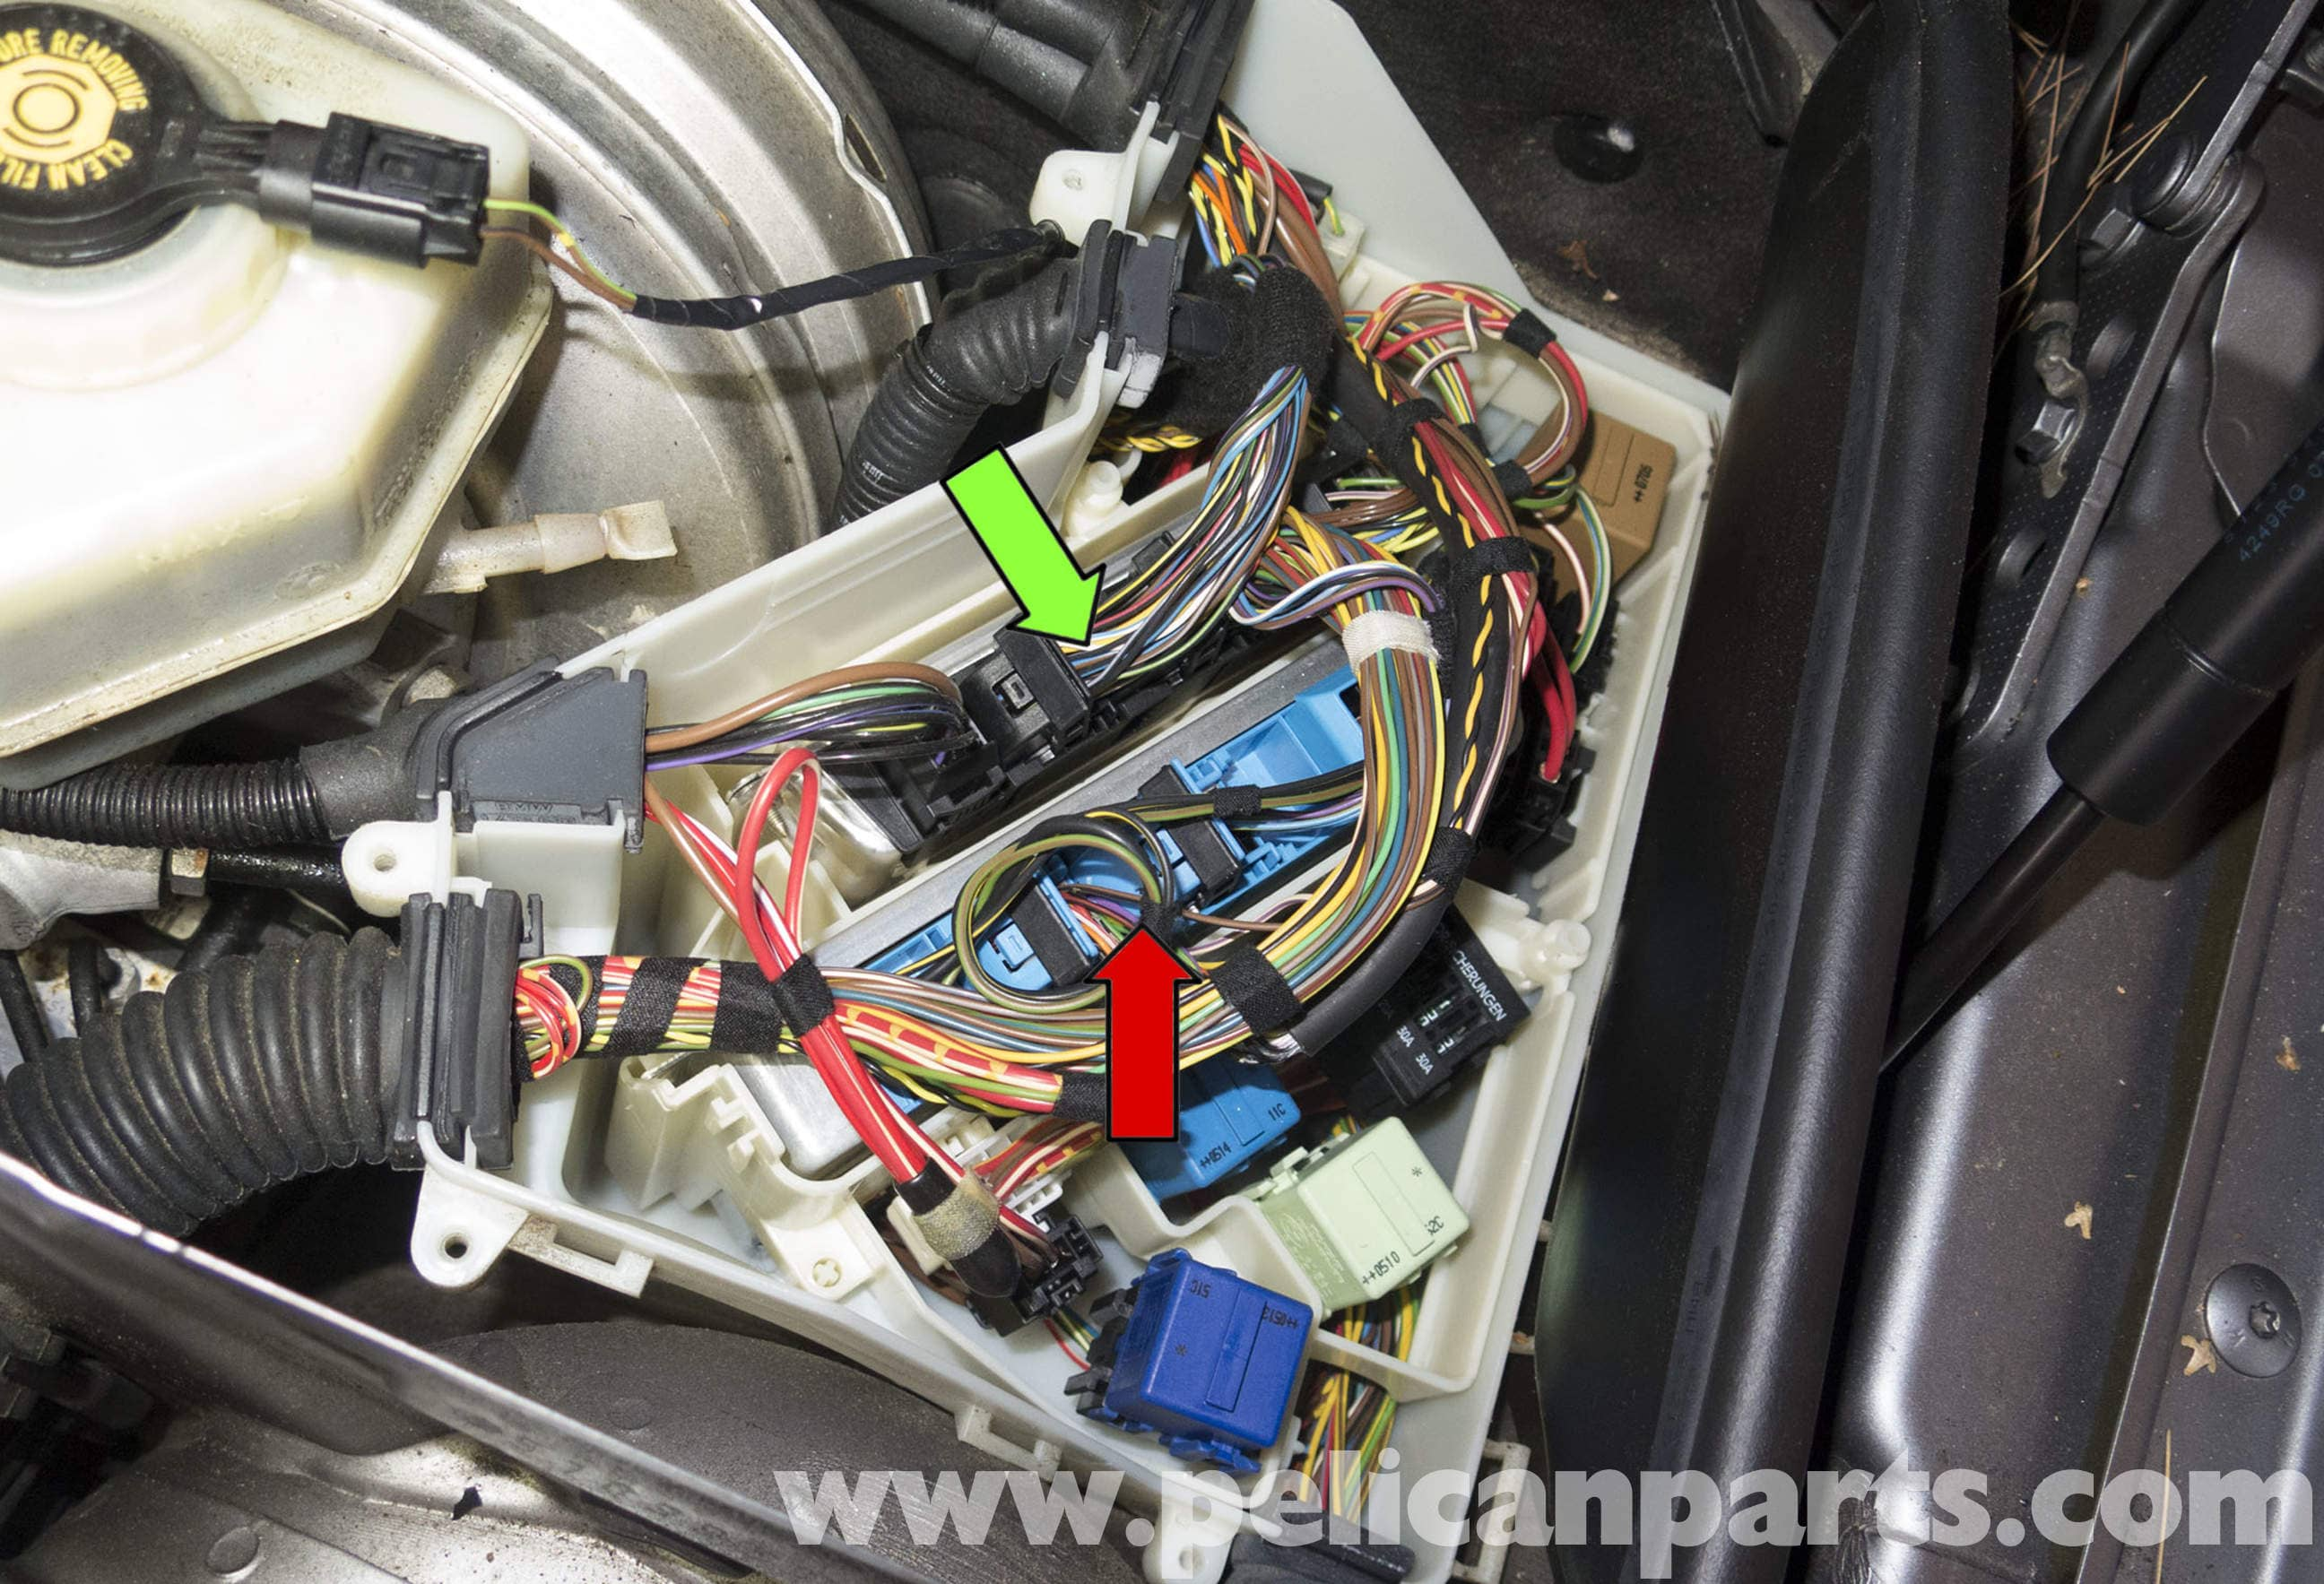 2003 bmw 745i fuse box diagram pelican parts technical article    bmw    x3 dme  engine  pelican parts technical article    bmw    x3 dme  engine